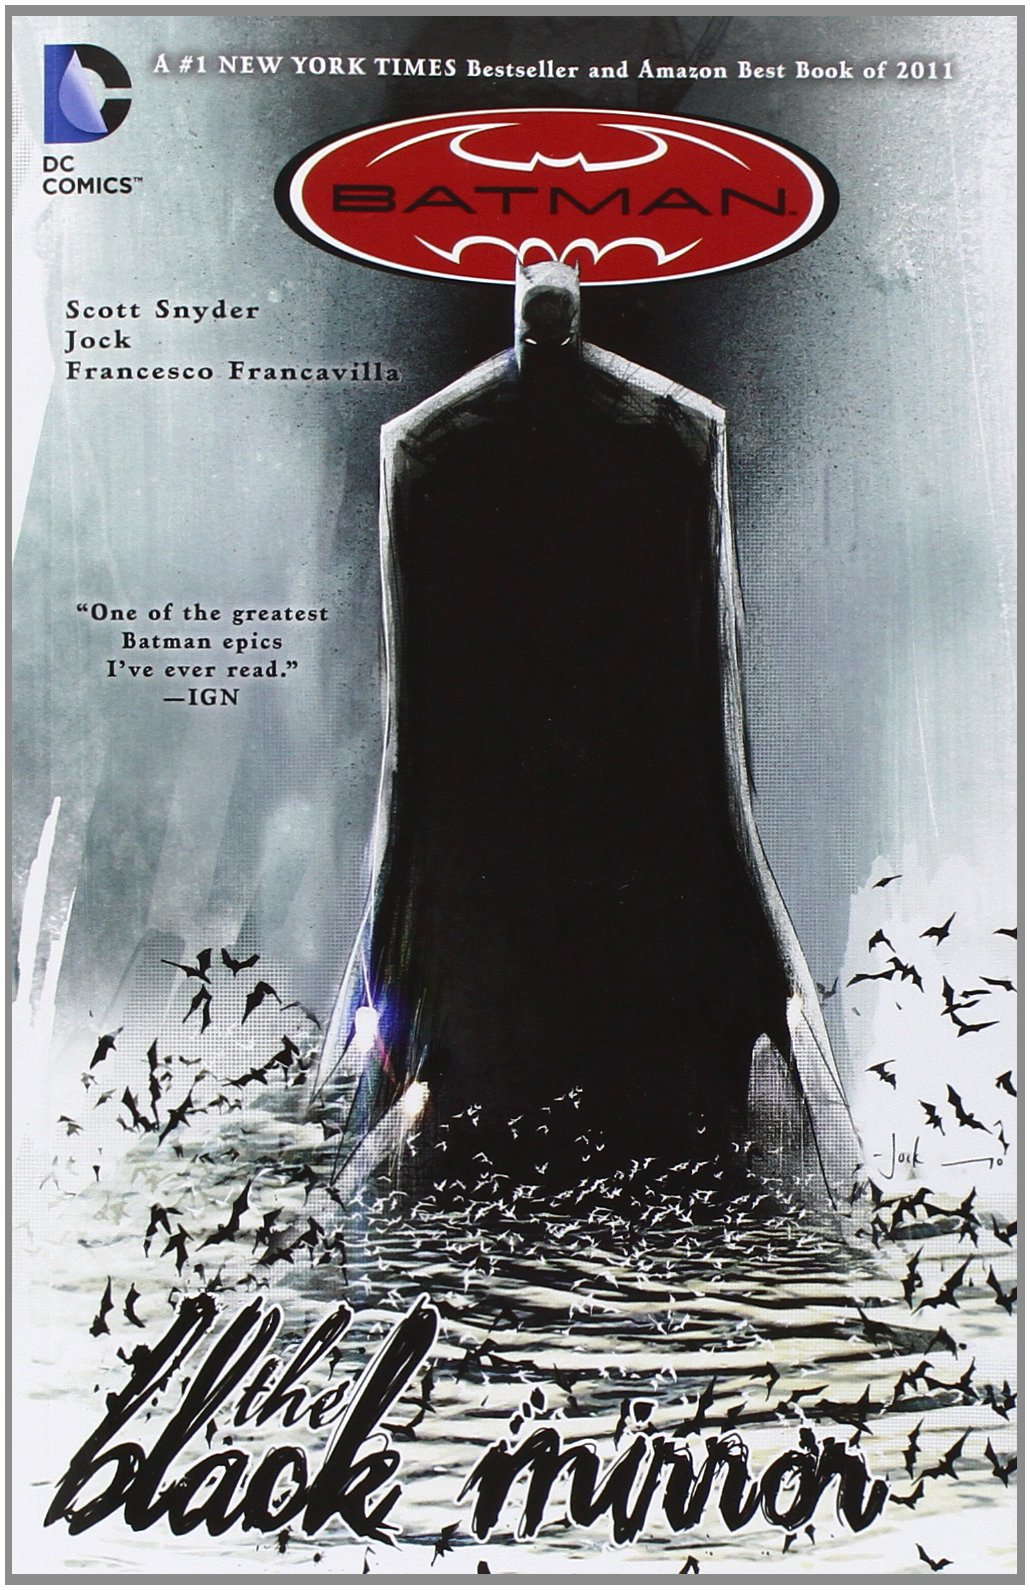 DC Comic's Batman - The Black Mirror book cover